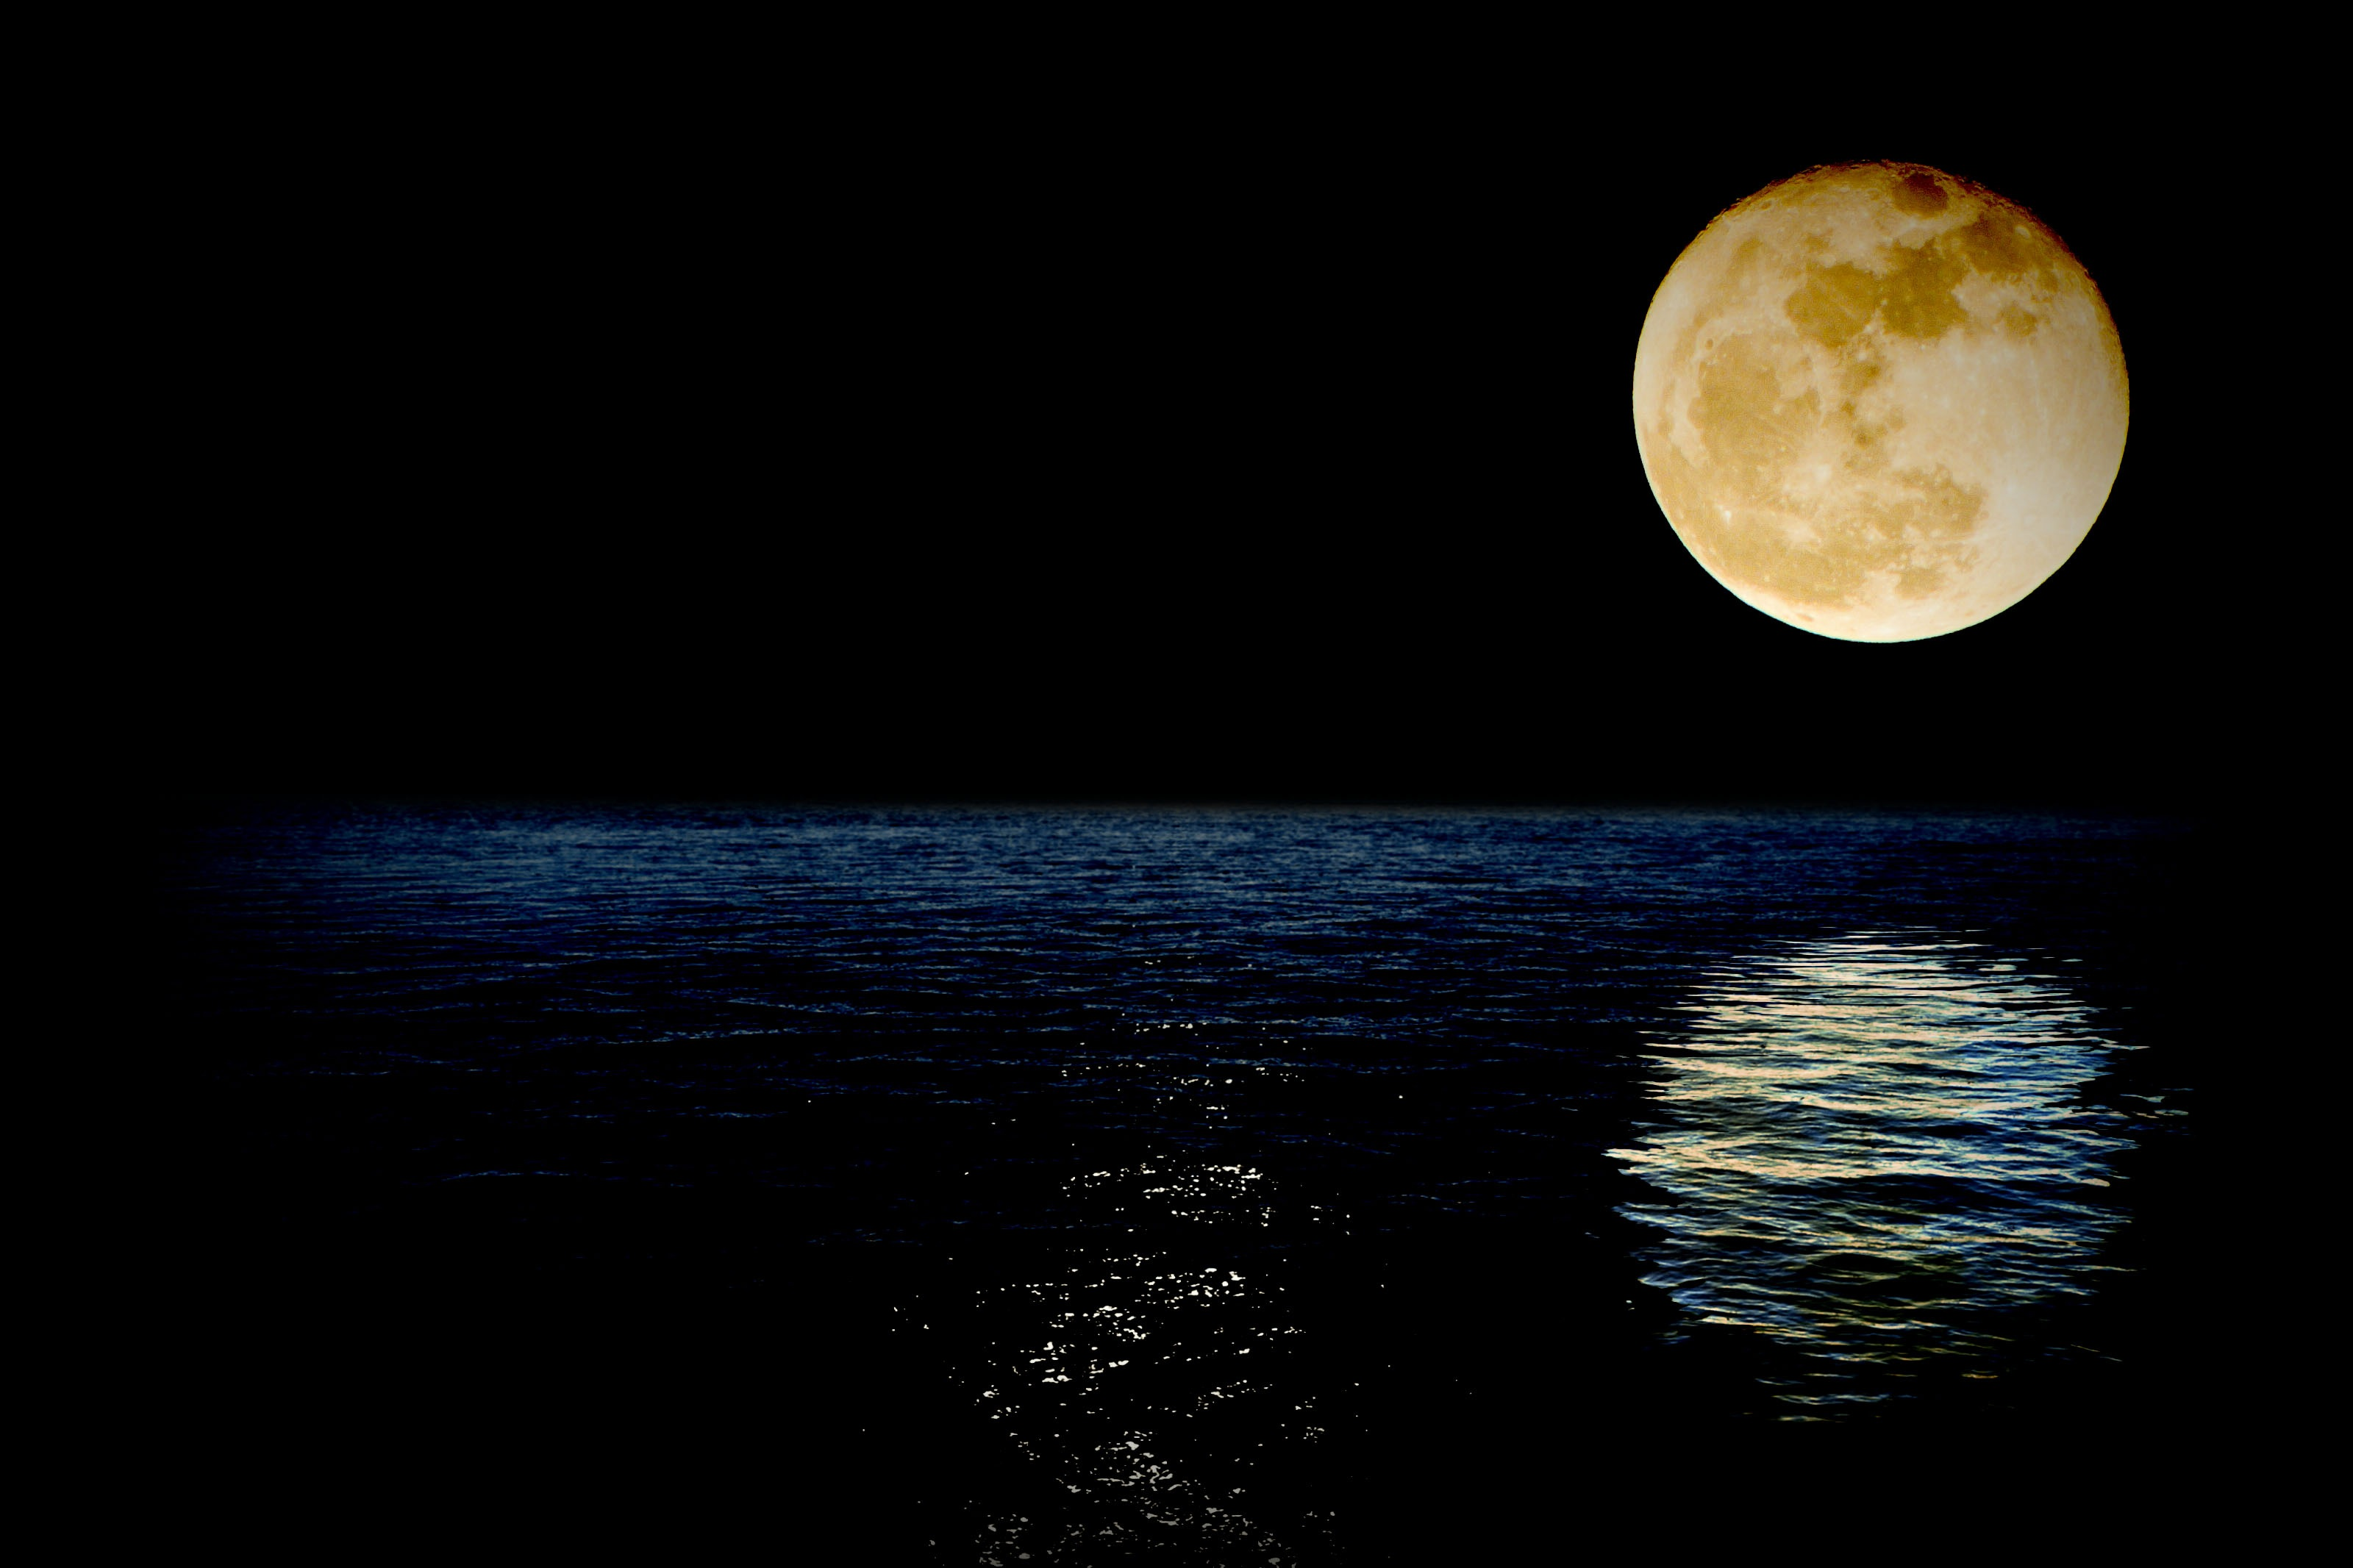 https://upload.wikimedia.org/wikipedia/commons/8/8e/Luna-Reflection-Sea-Superluna-Night-Super-Water-1826849.jpg